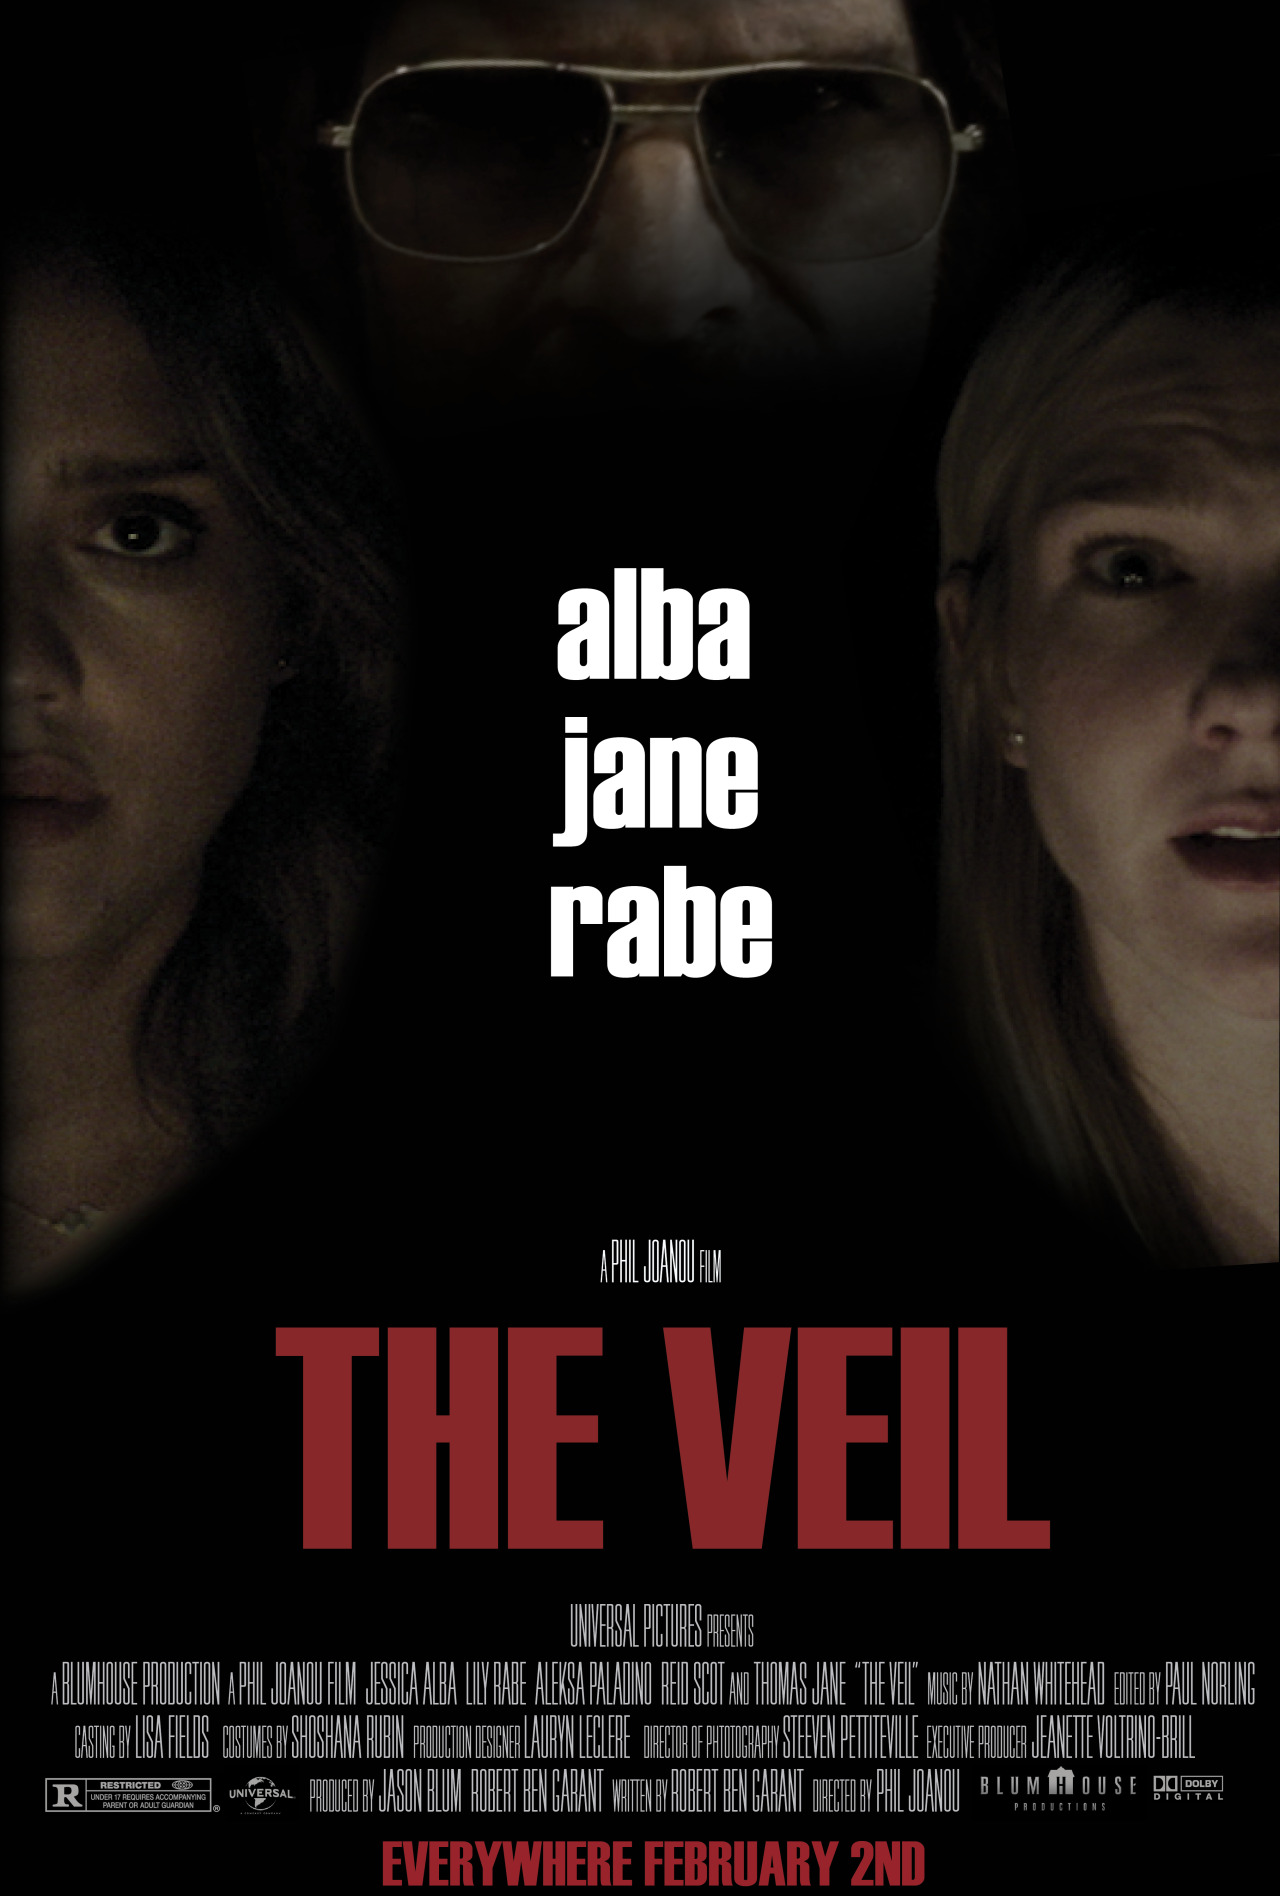 I love this design on the new The Veil poster.